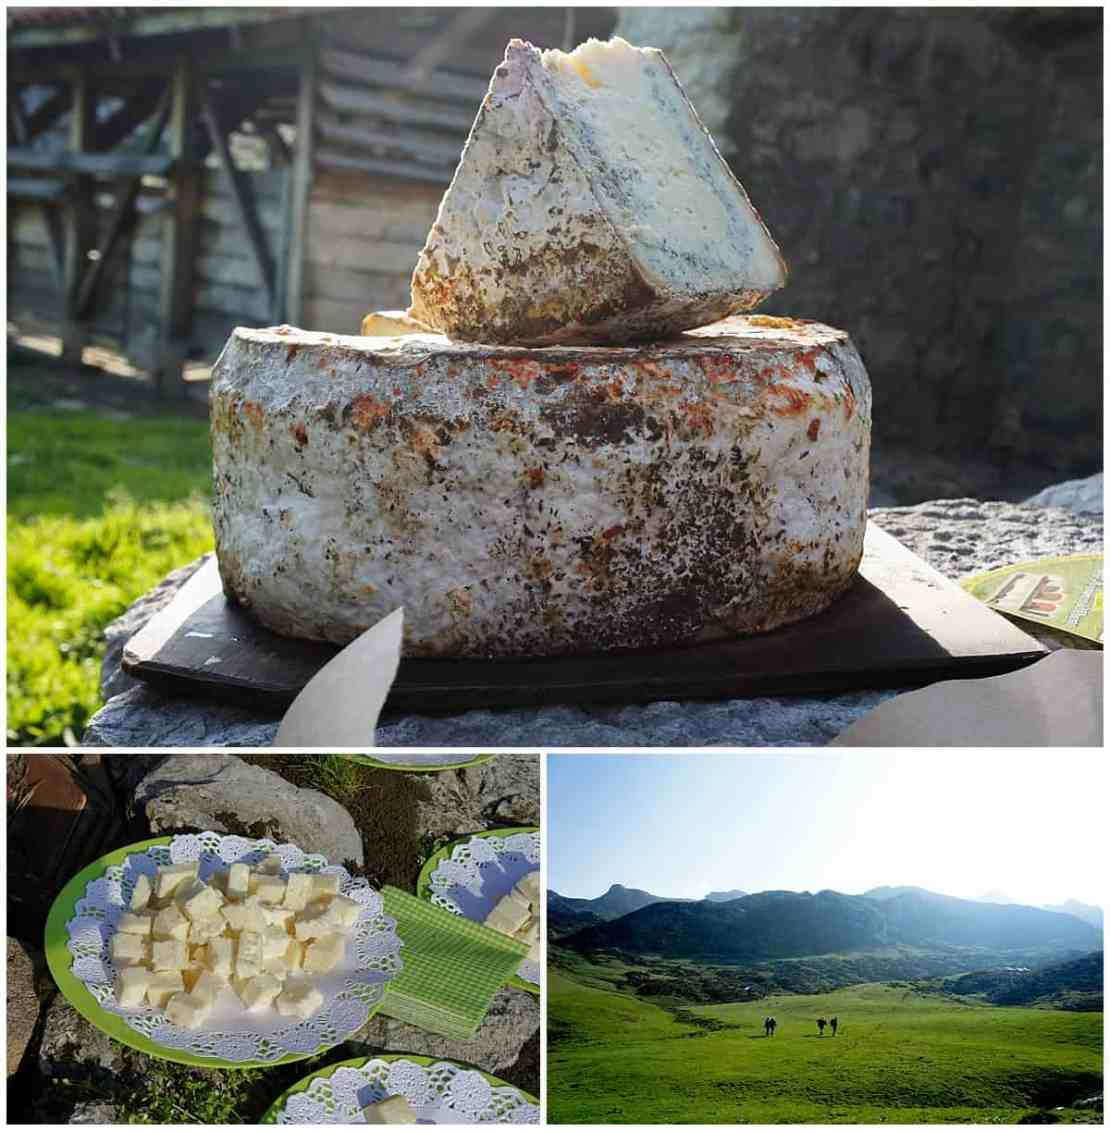 Picos Europa Authentic Farmed Cheese